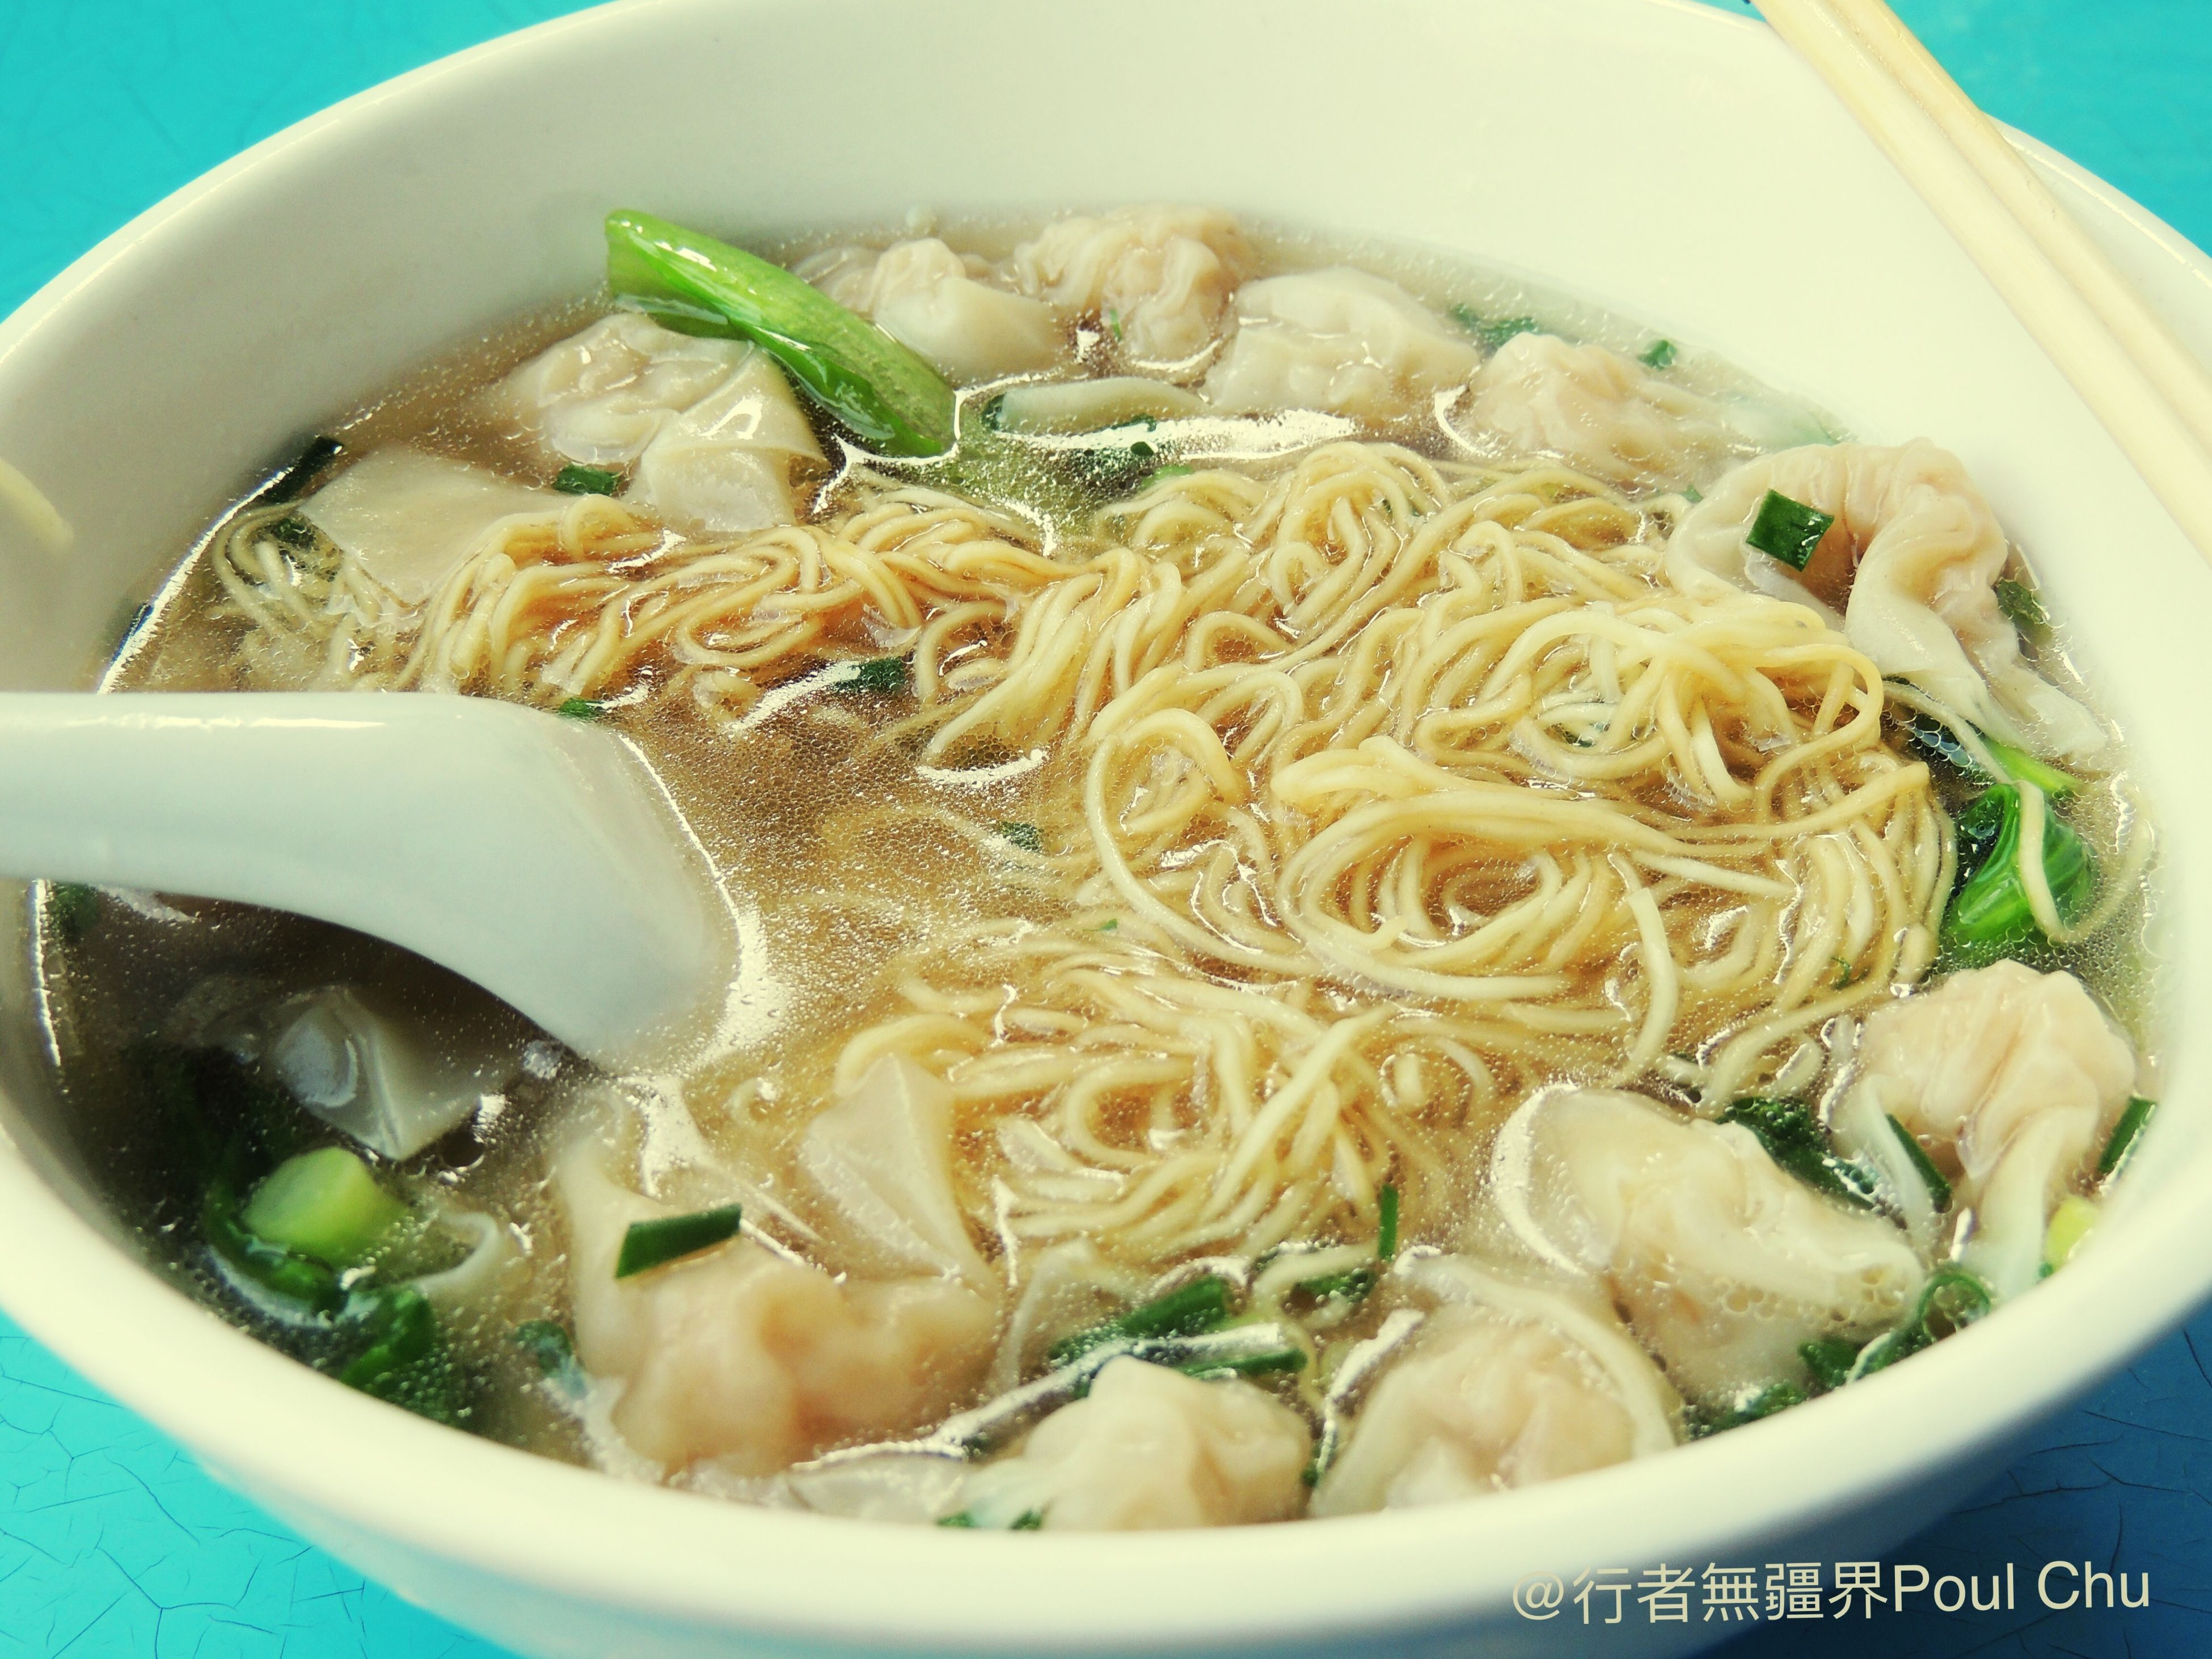 food and drink, food, indoors, freshness, ready-to-eat, healthy eating, bowl, meal, plate, noodles, serving size, close-up, soup, still life, pasta, cooked, high angle view, spoon, vegetable, indulgence